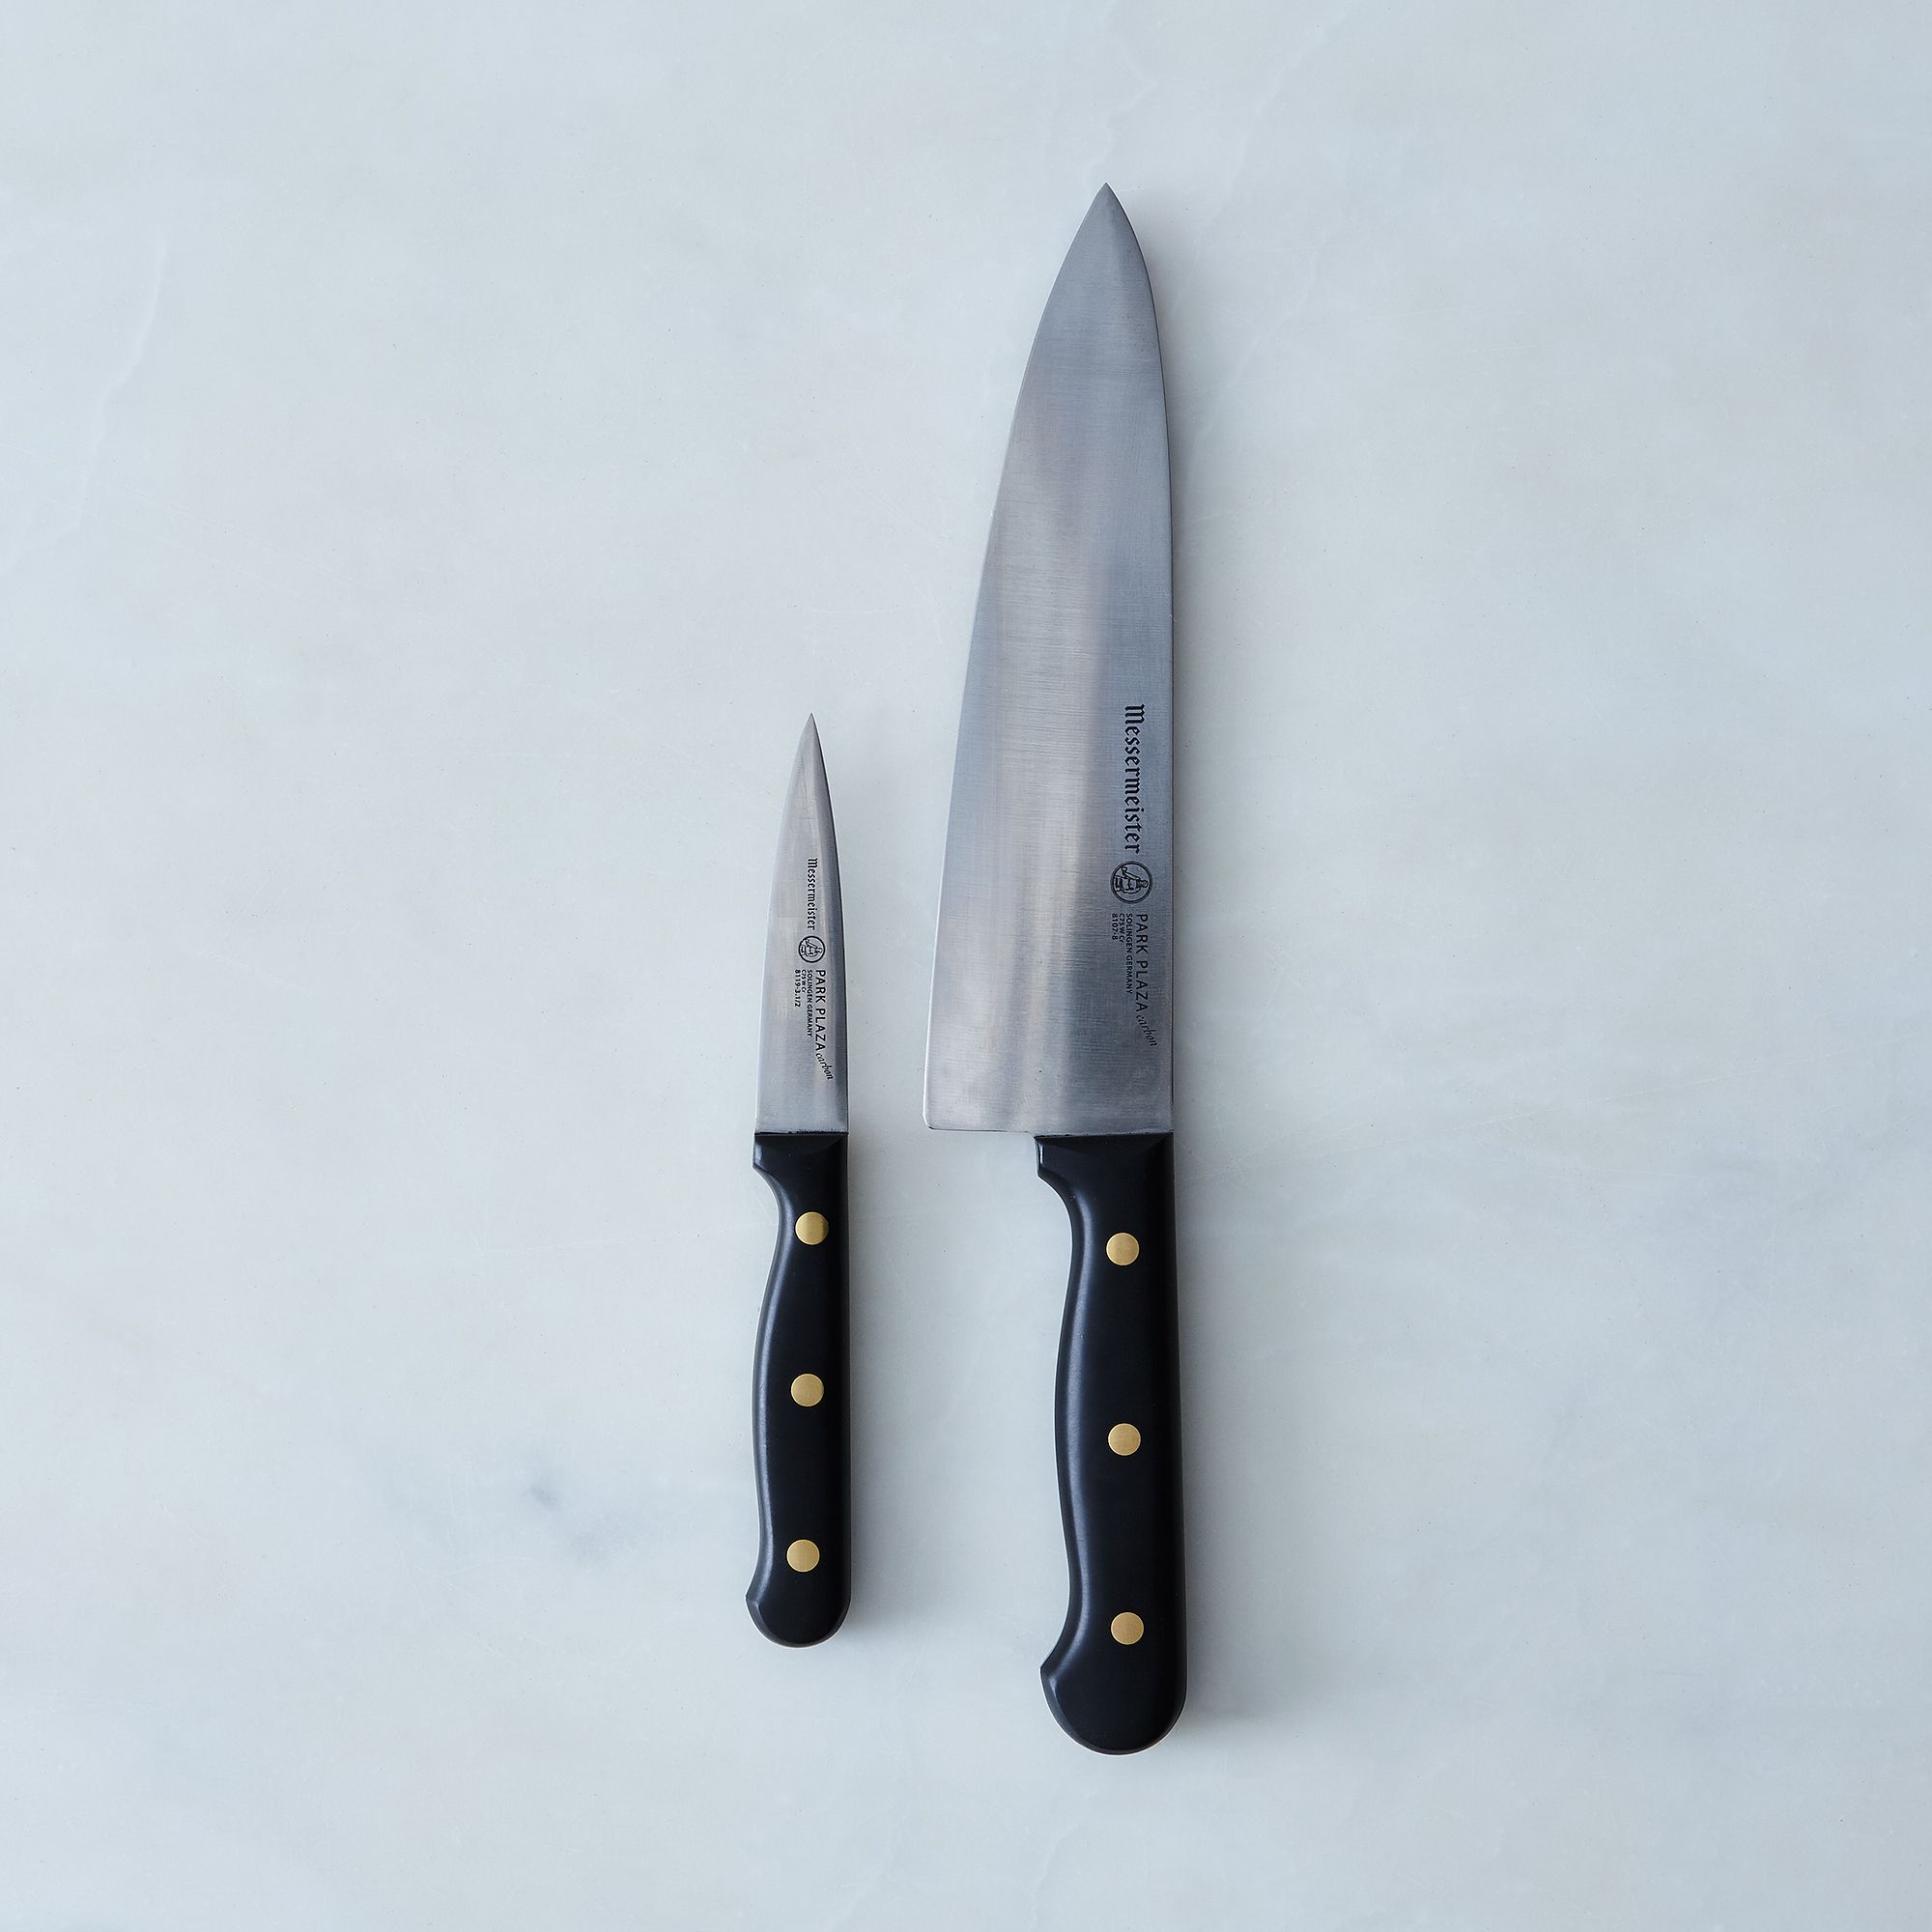 How to Care for Carbon Steel Knives